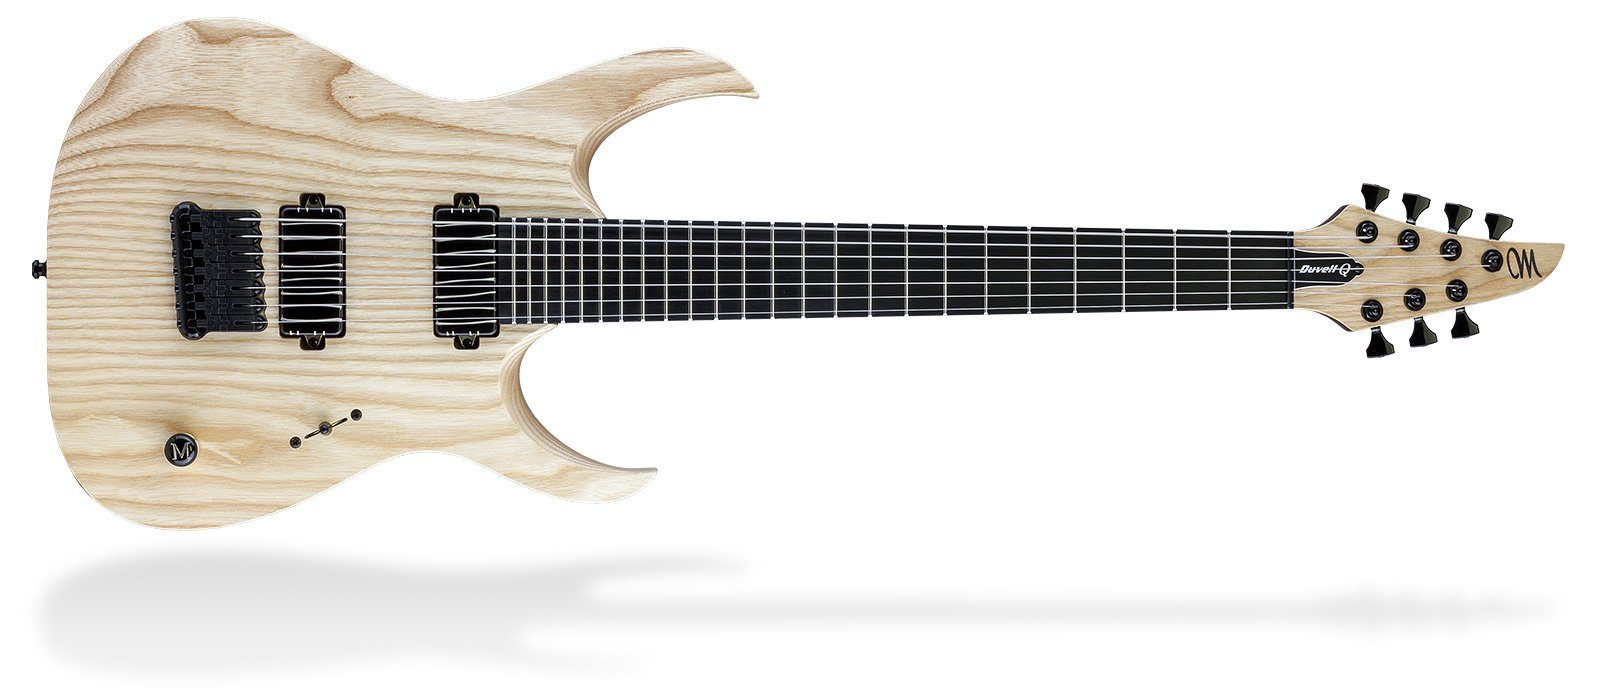 Mayones Duvell Q Spring Brook - John Browne Signature 7-string Guitars Mayones